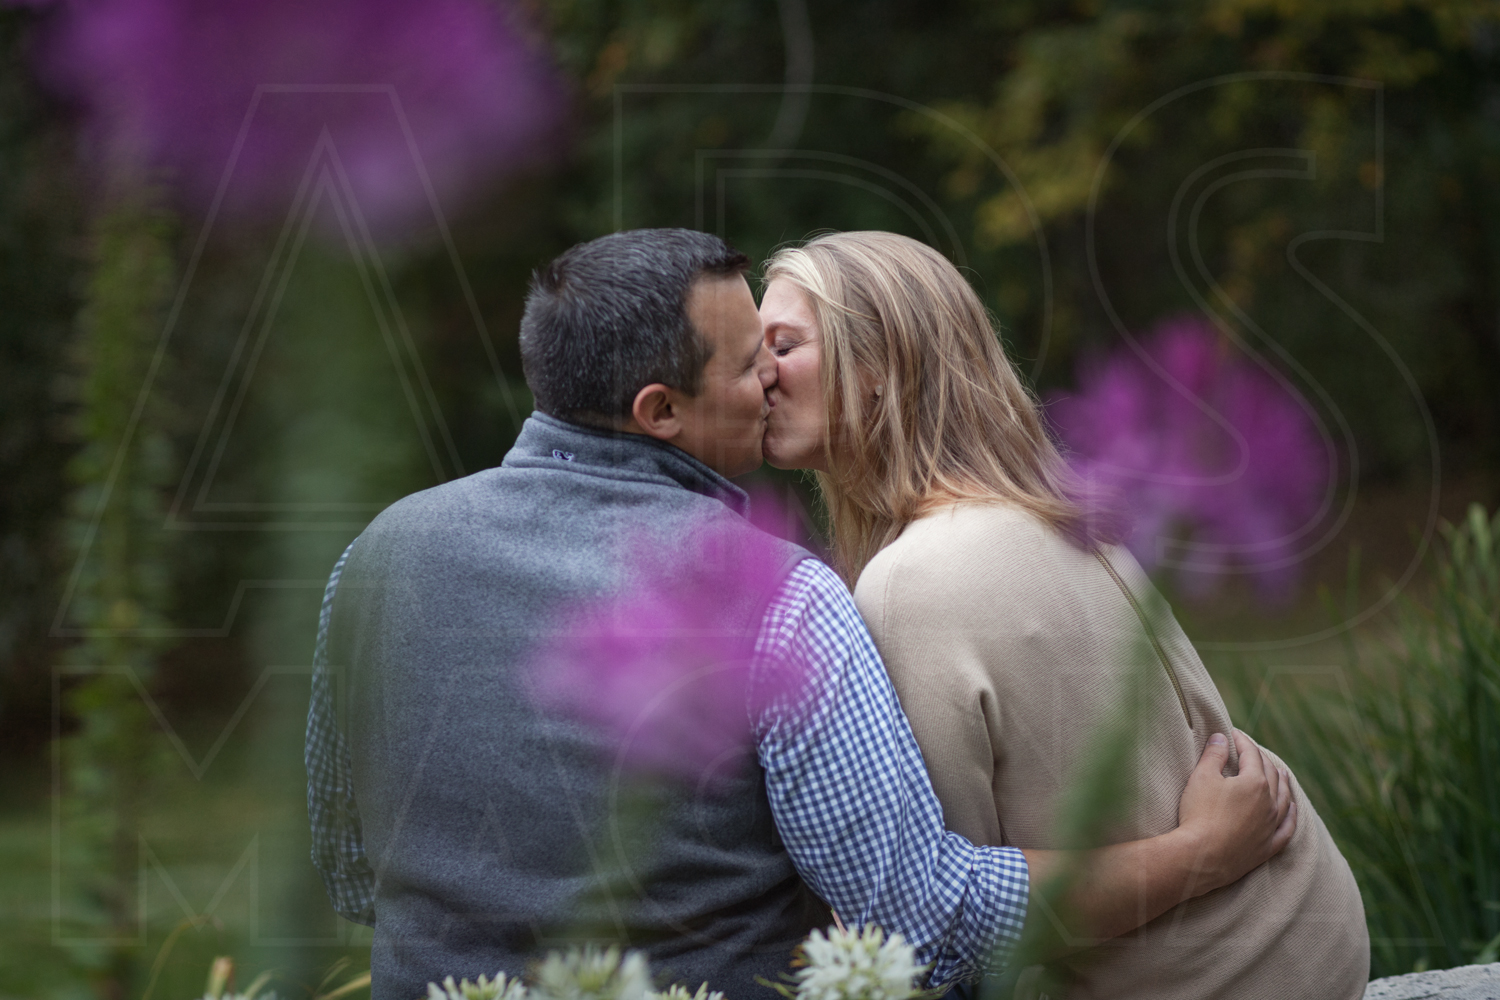 clarks cove farm engagement photography flowers